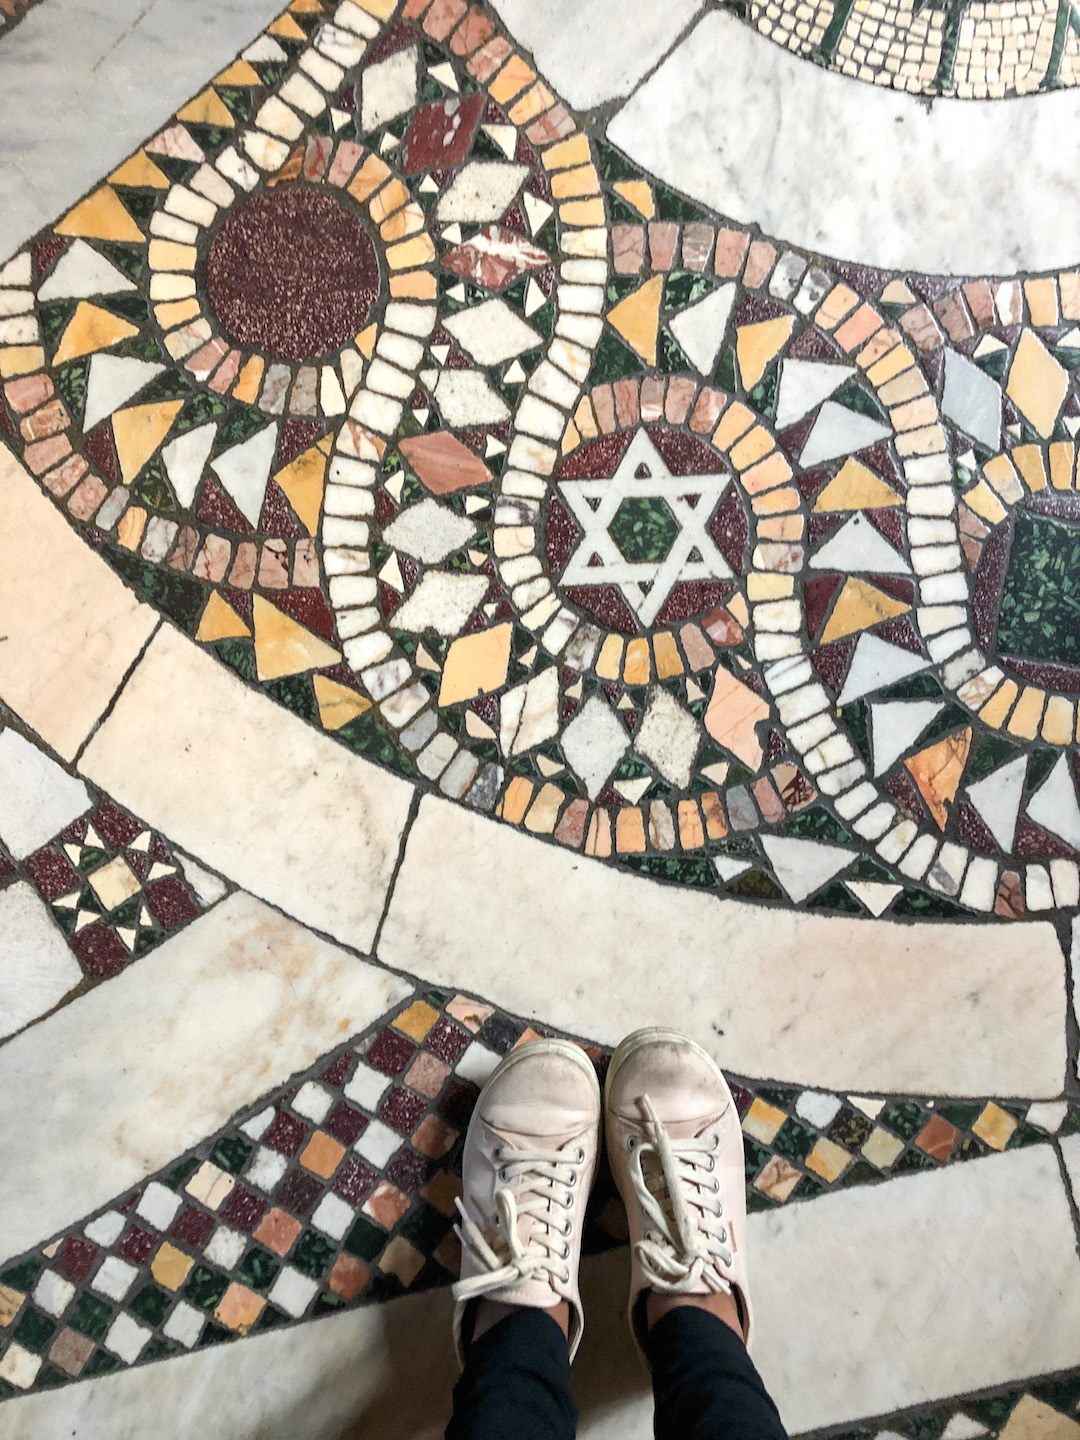 Jewish Star in Vatican City